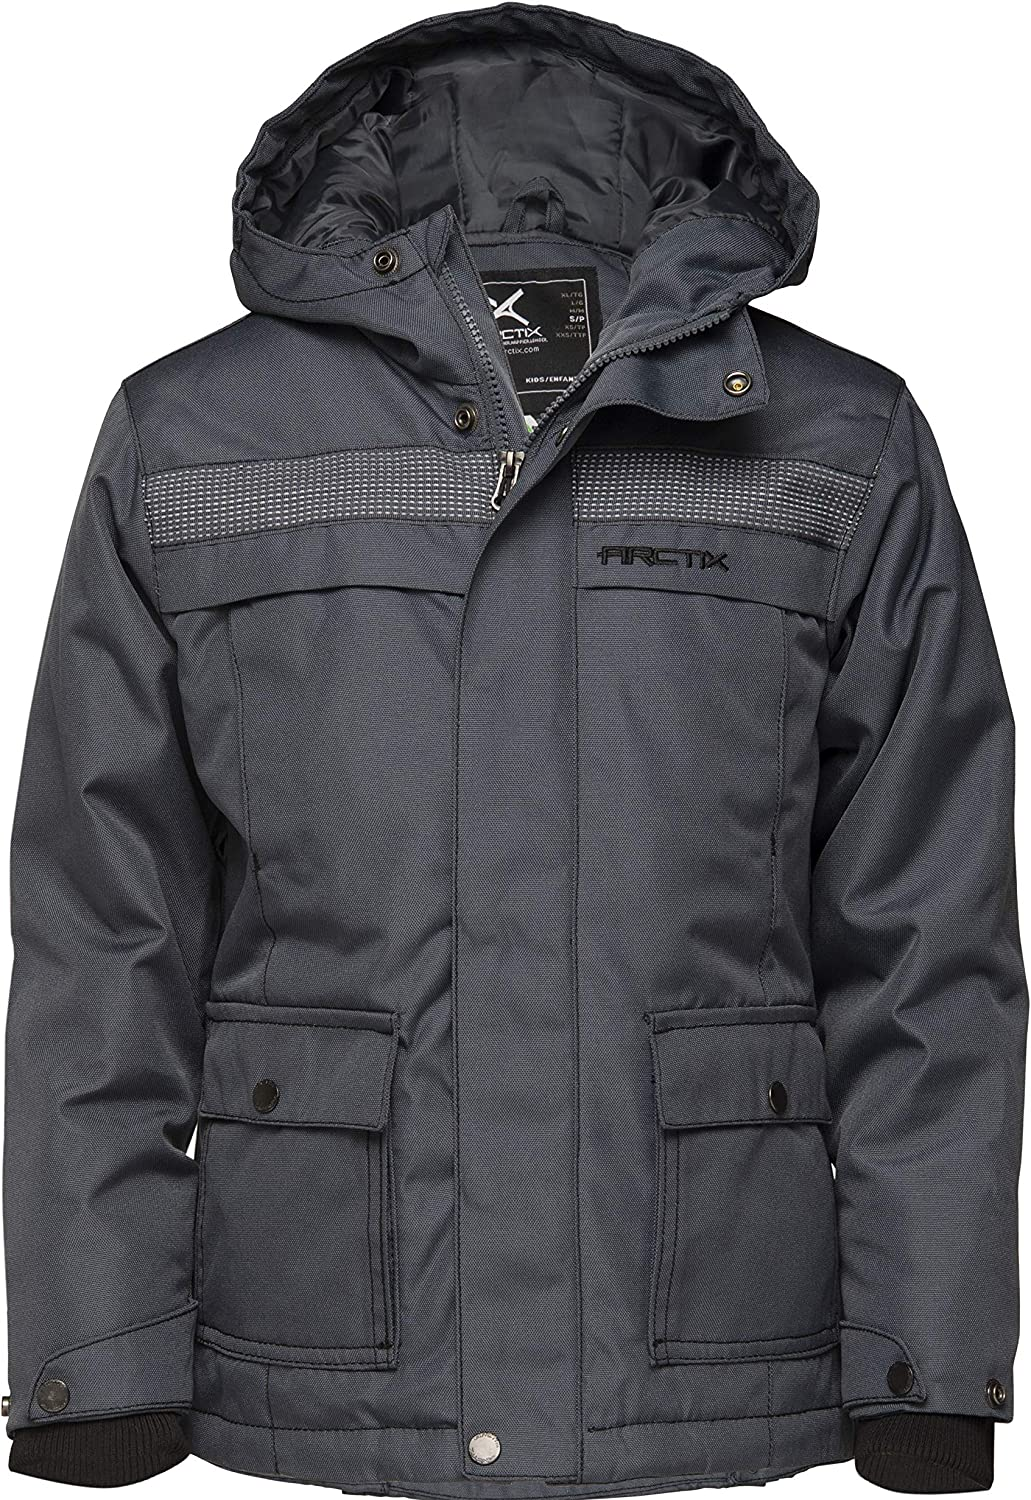 Arctix Kids Direct sale of manufacturer Tundra Jacket Jr. High quality new Insulated